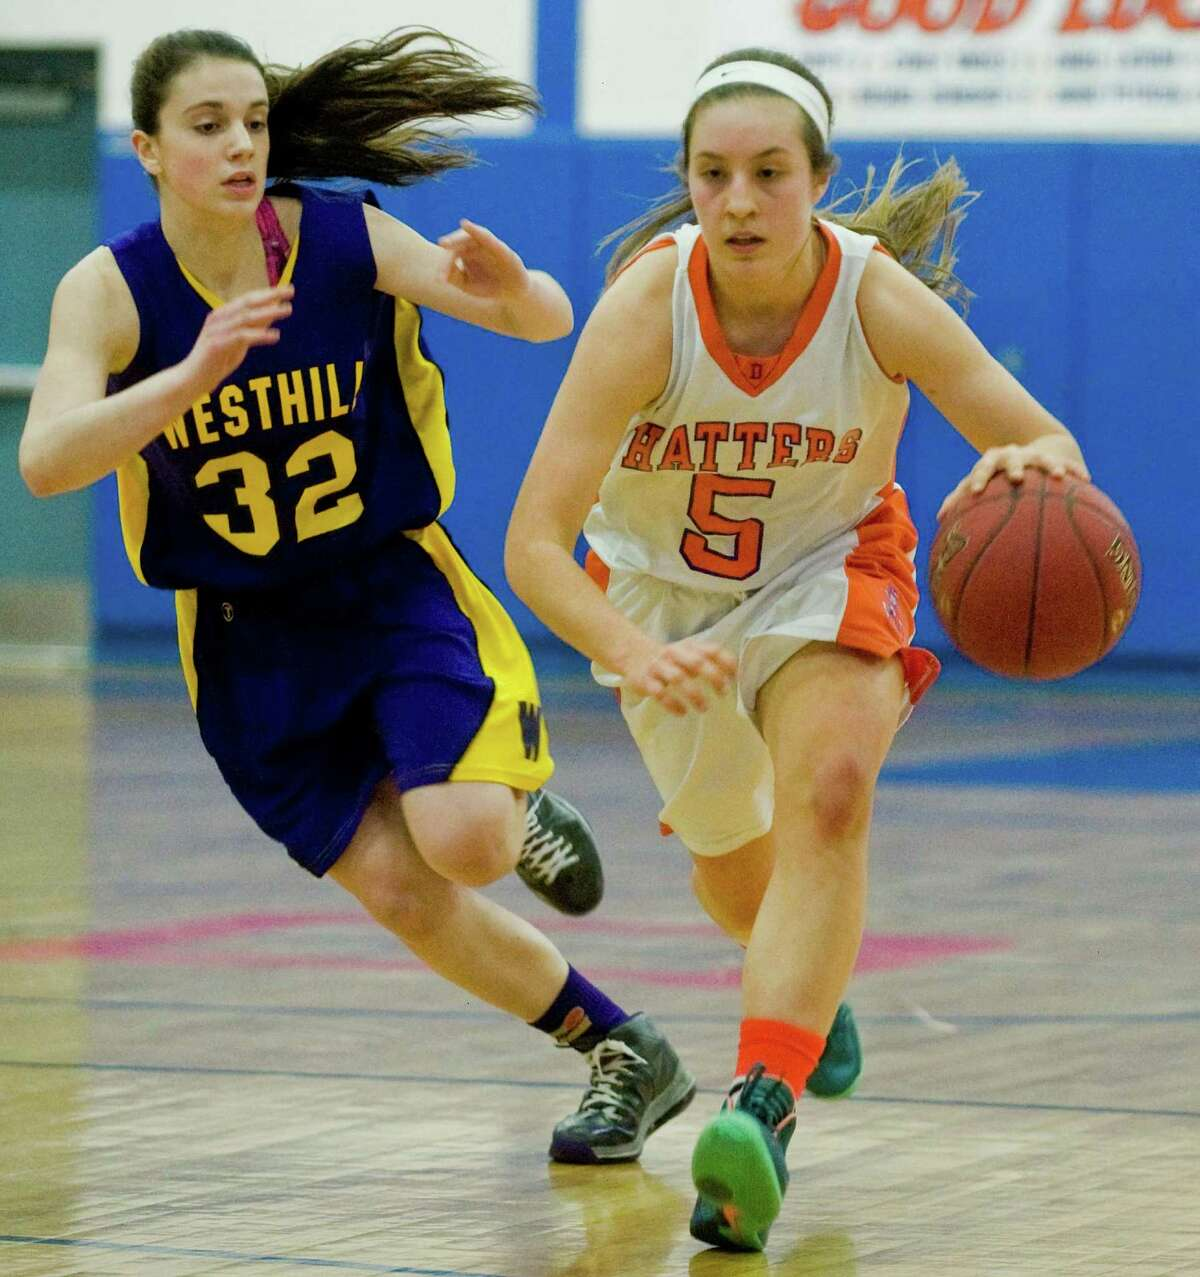 Westhill High School Guard Olivia Wise tries to chase down Danbury High School Guard Rachel Gartner during the Class LL Girls Basketball Quarterfinals against Westhill High School, played at Danbury. Monday, March 10, 2014